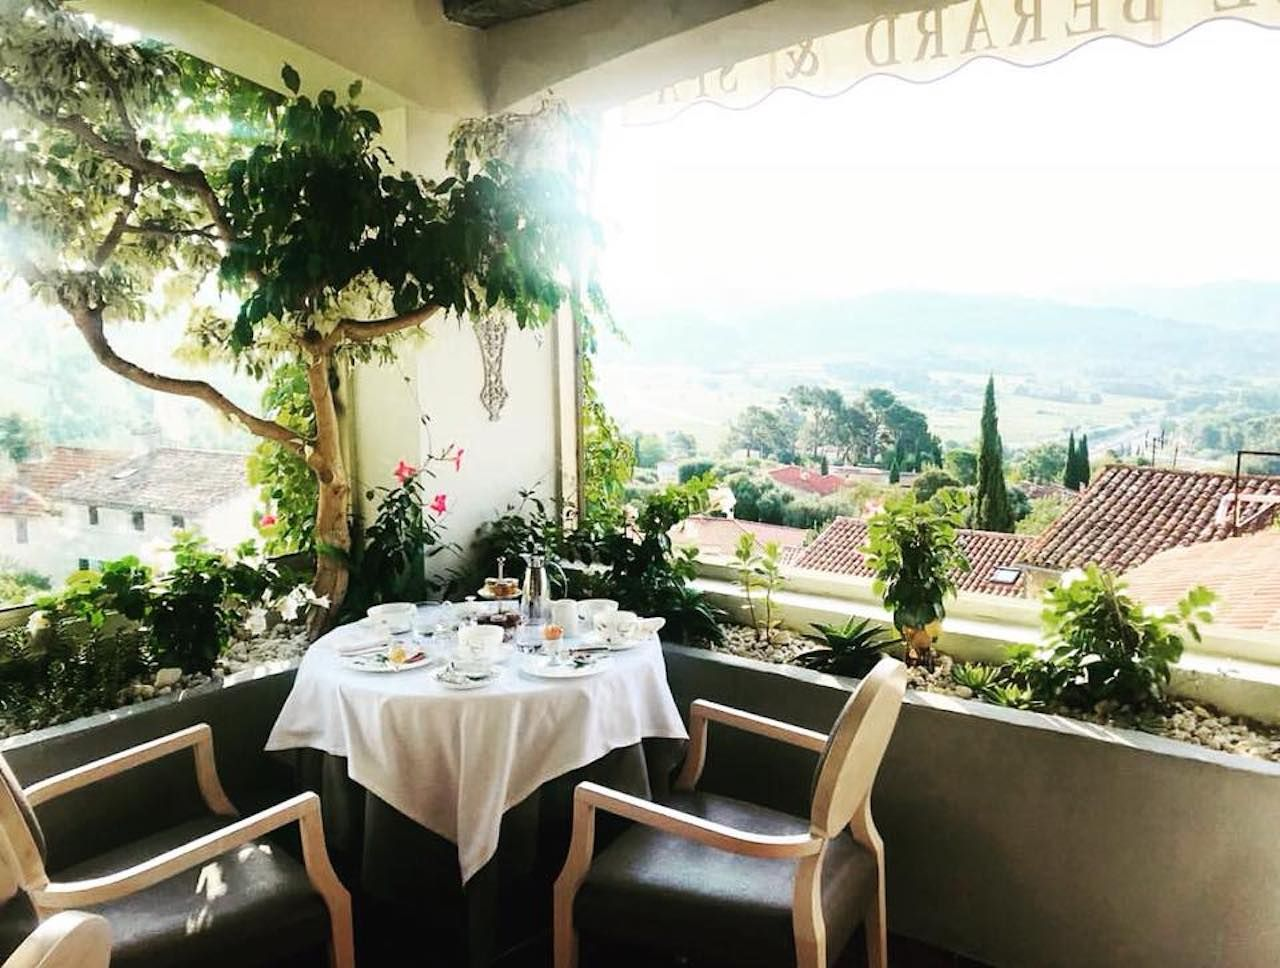 Breakfast table with a view and greenery in France